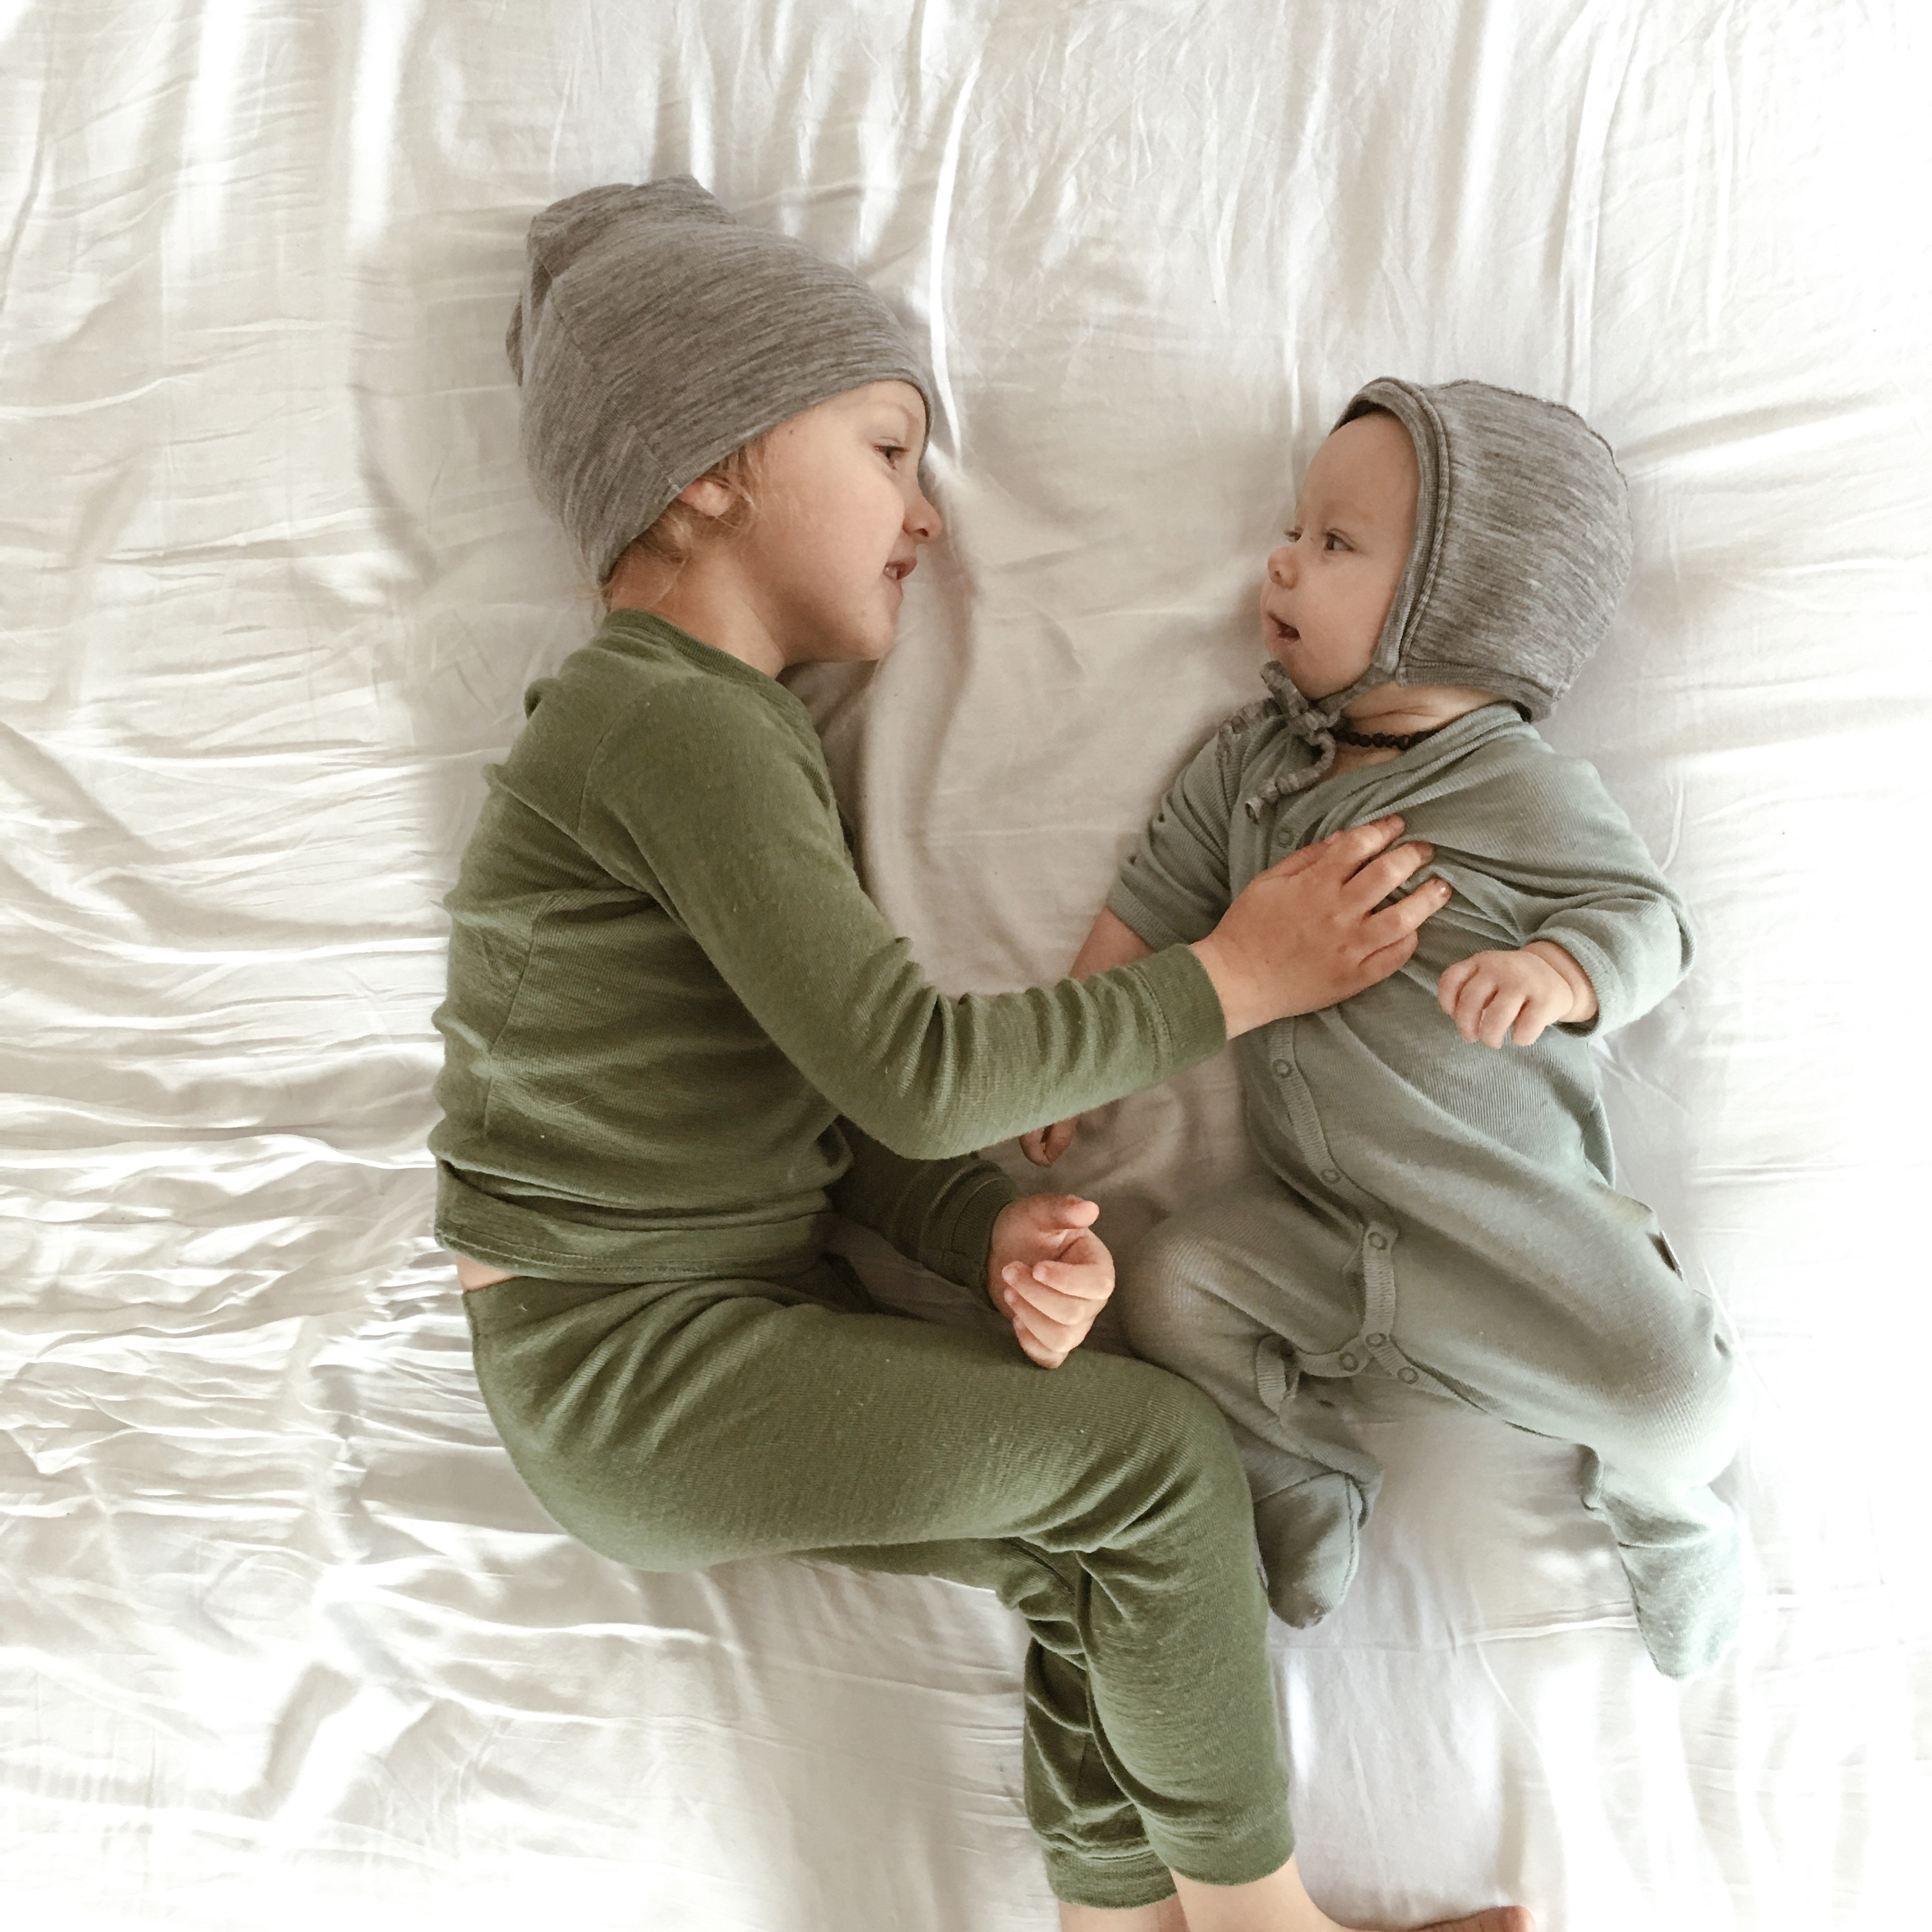 Simple Merino Wool PJ's to help regulate your child's temperature